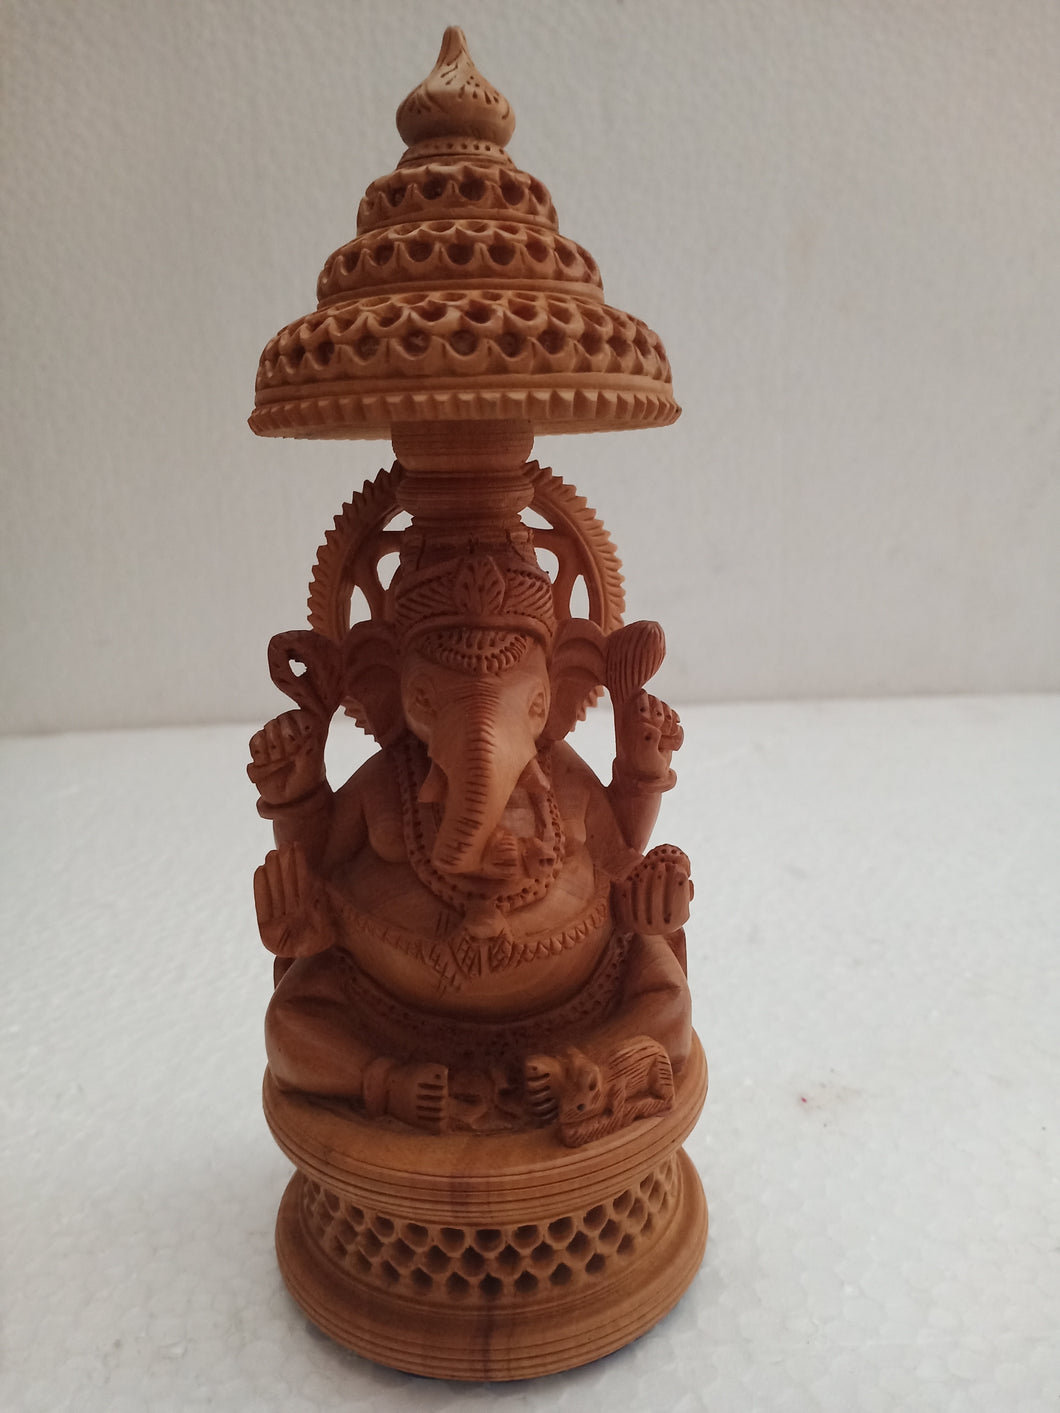 White wood. Curving Ganesh